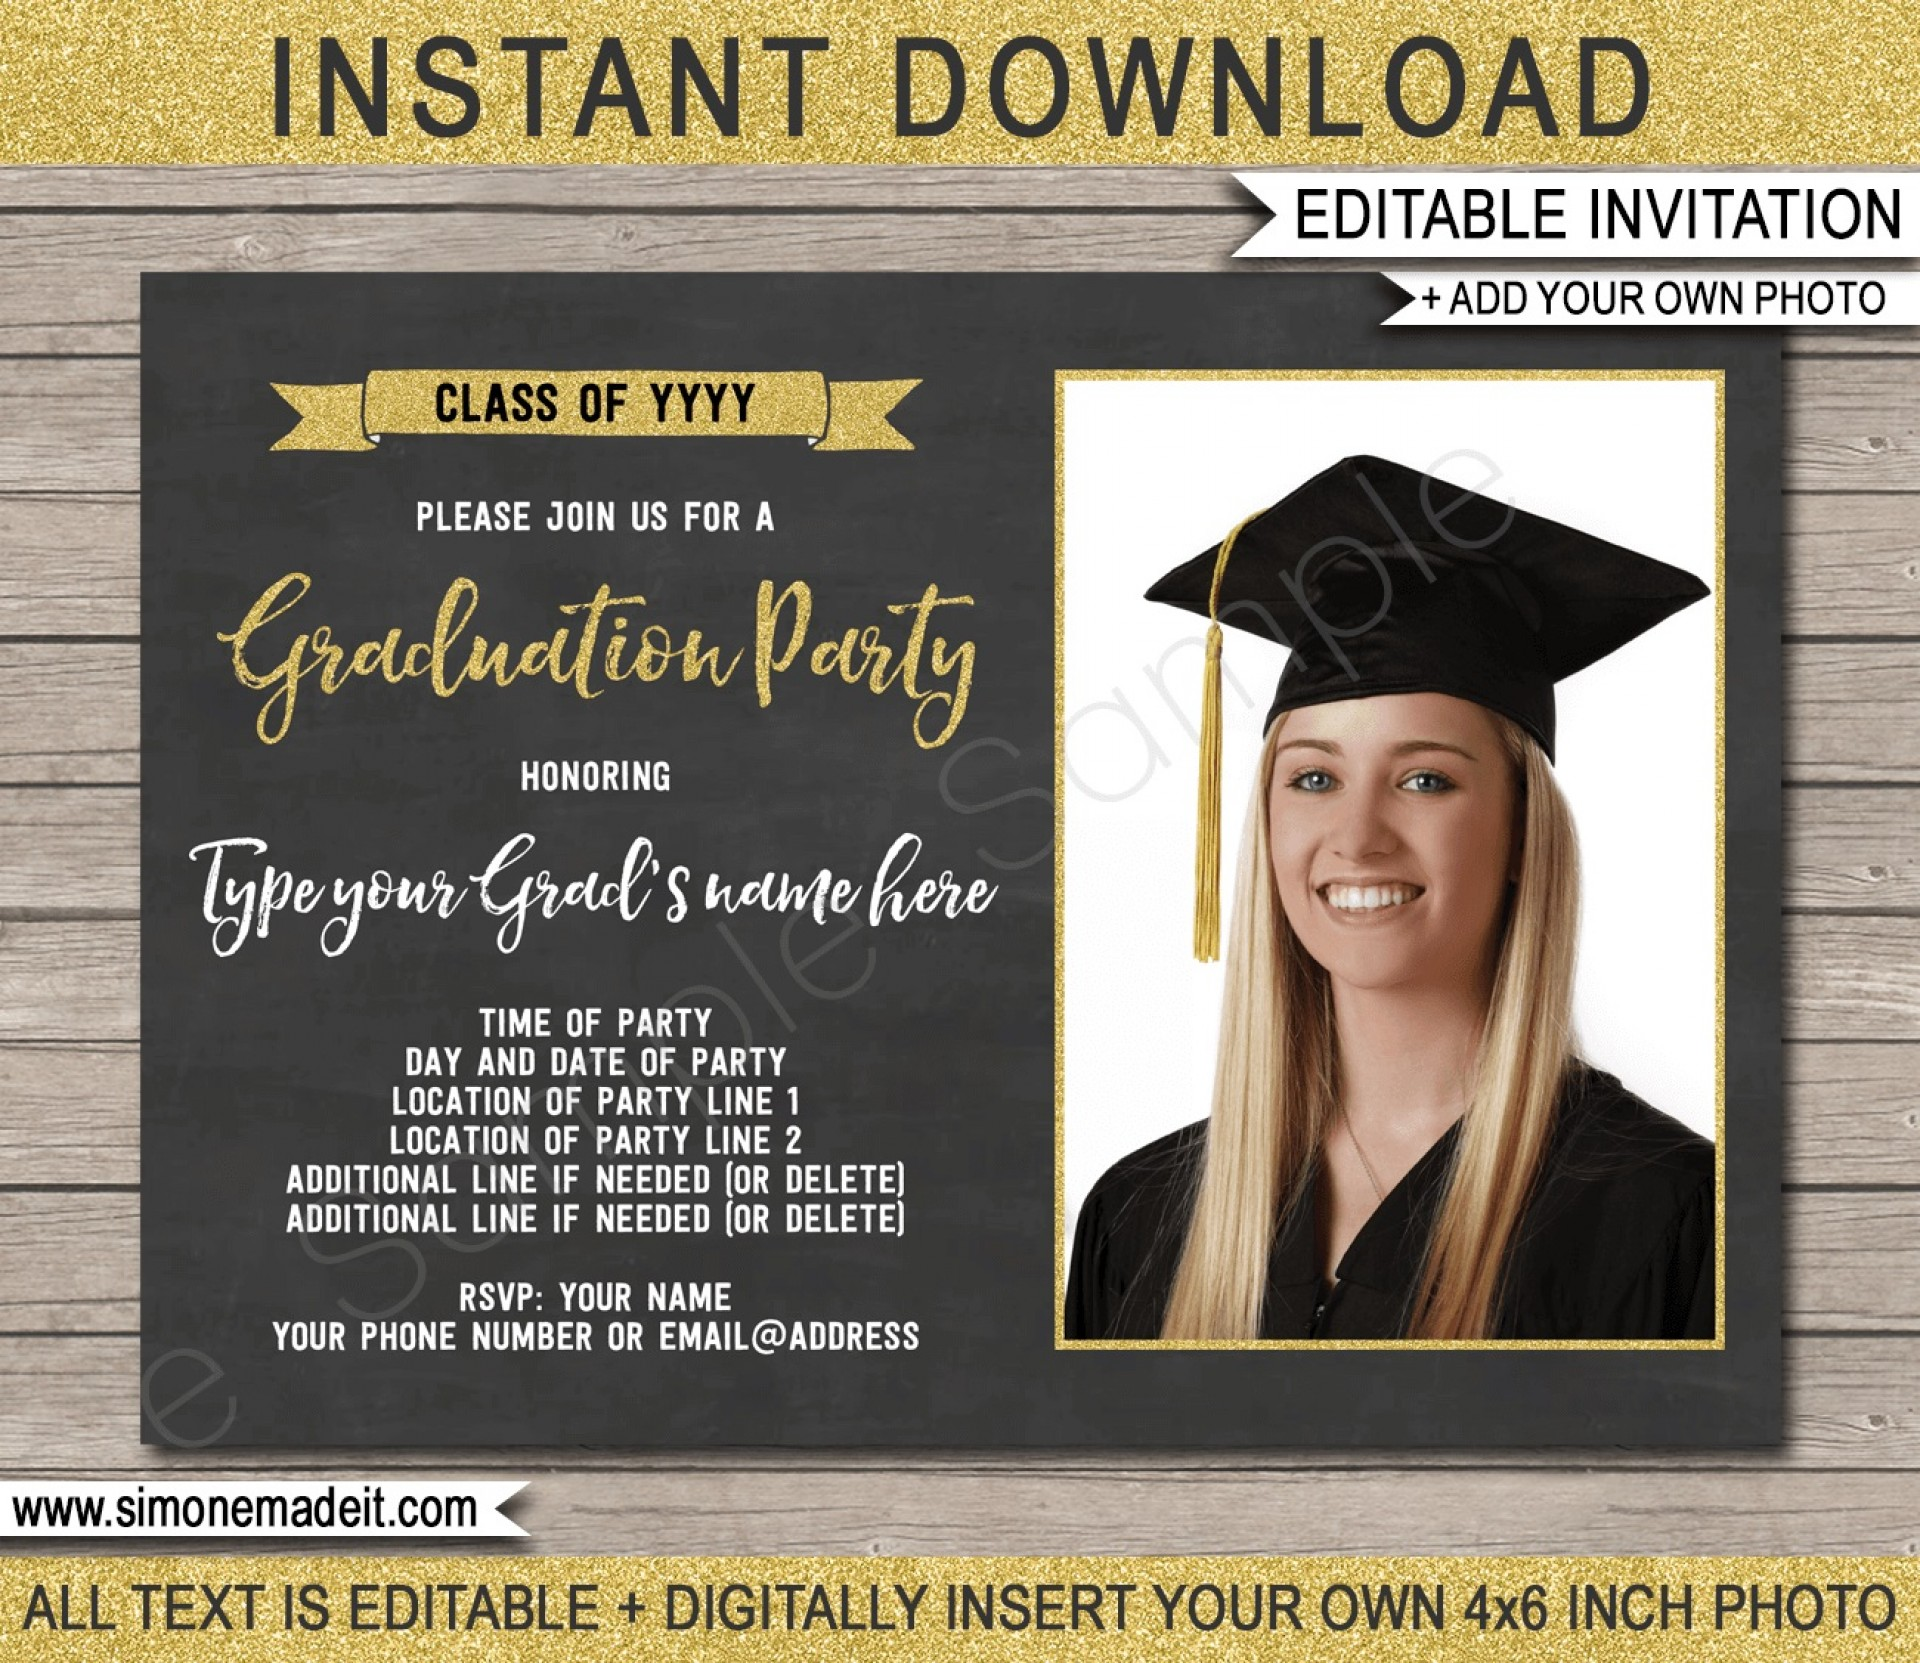 009 Stirring Graduation Party Invitation Template High Definition  Microsoft Word 4 Per Page1920